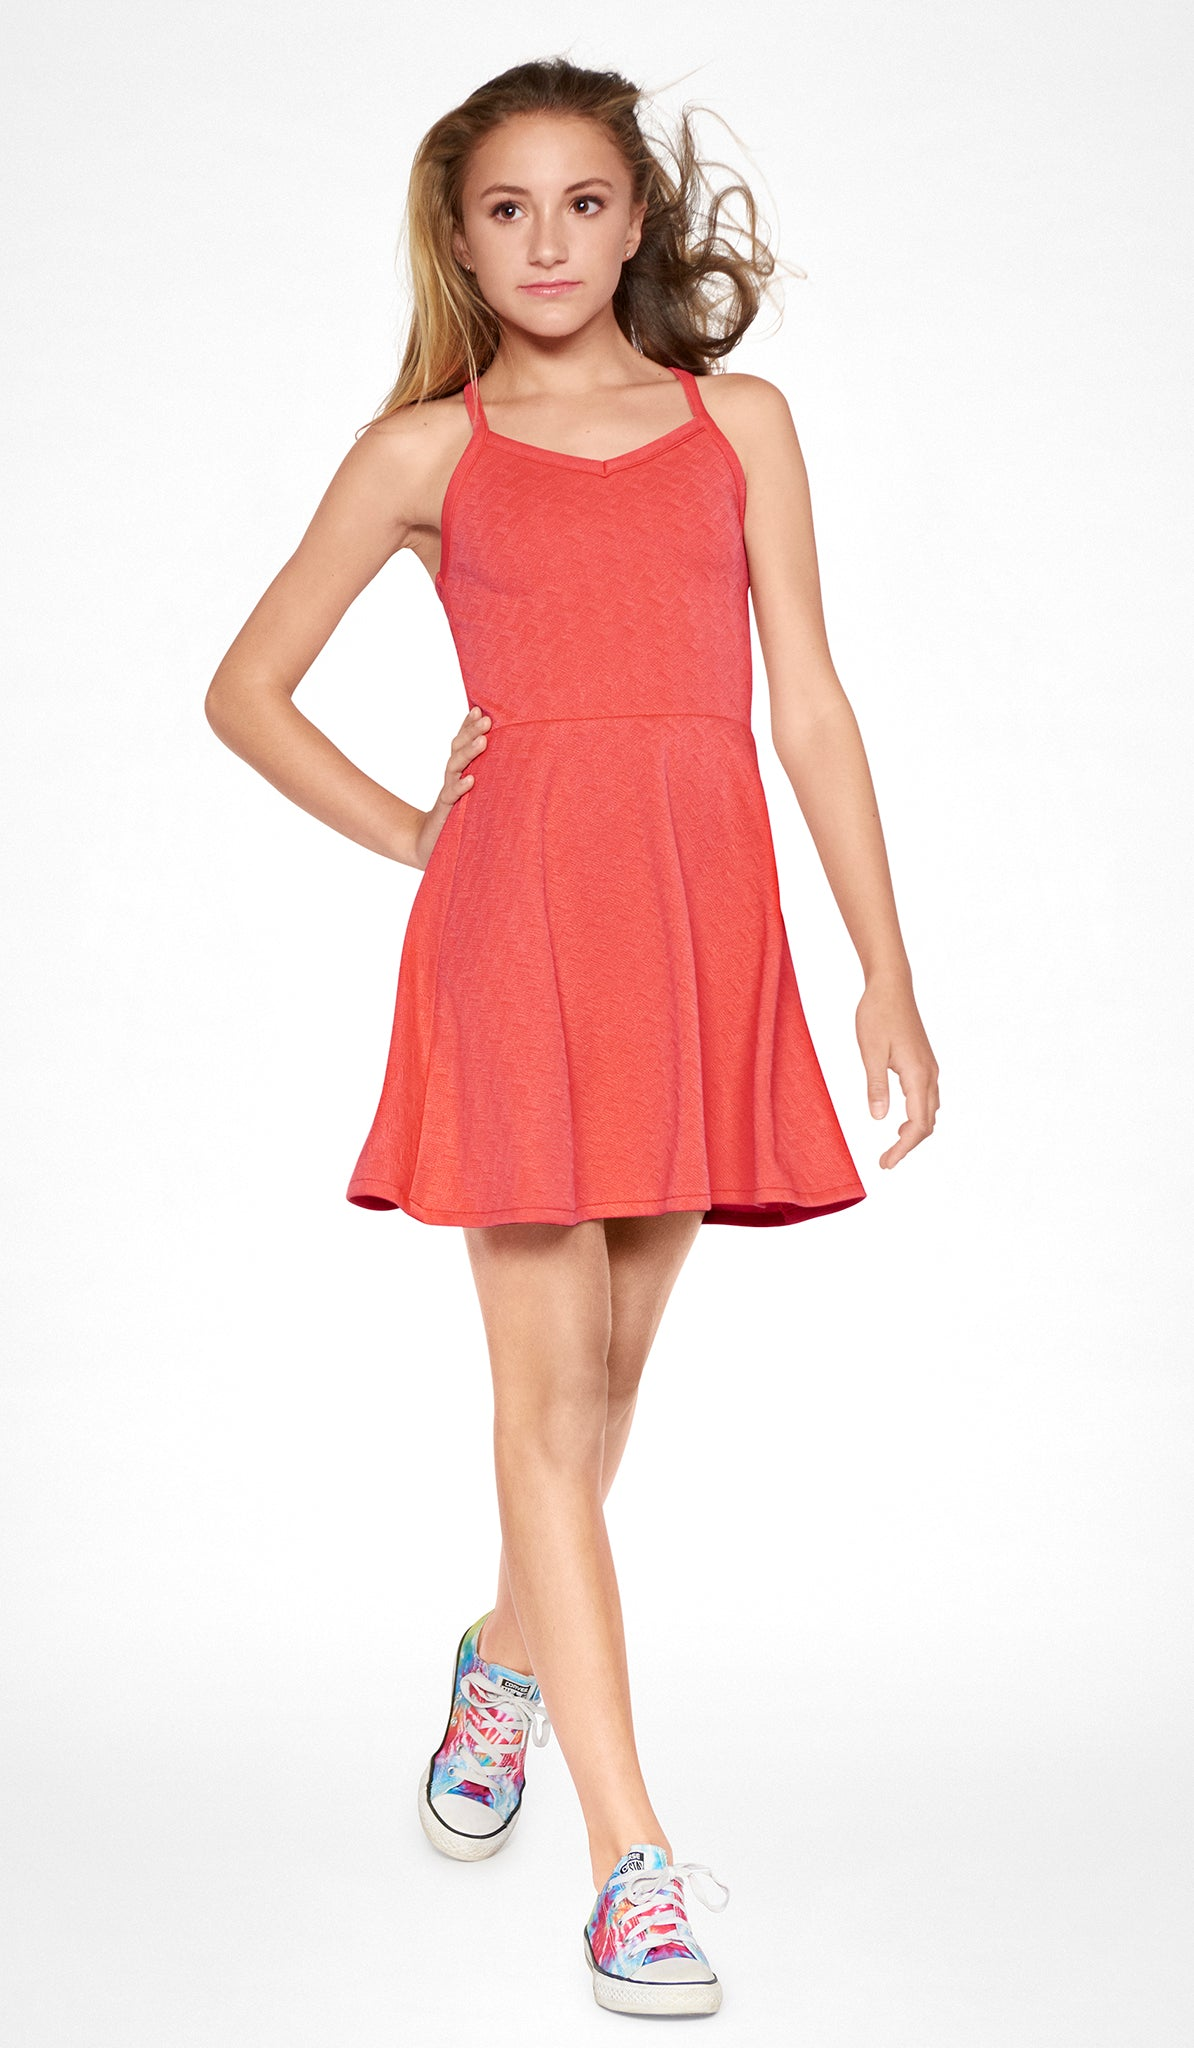 THE NOLITA DRESS - Sallymiller.com - [variant title] - | Event & Party Dresses for Tween Girls & Juniors | Weddings Dresses, Bat Mitzvah Dresses, Sweet Sixteen Dresses, Graduation Dresses, Birthday Party Dresses, Bar Mitzvah Dresses, Cotillion Dresses